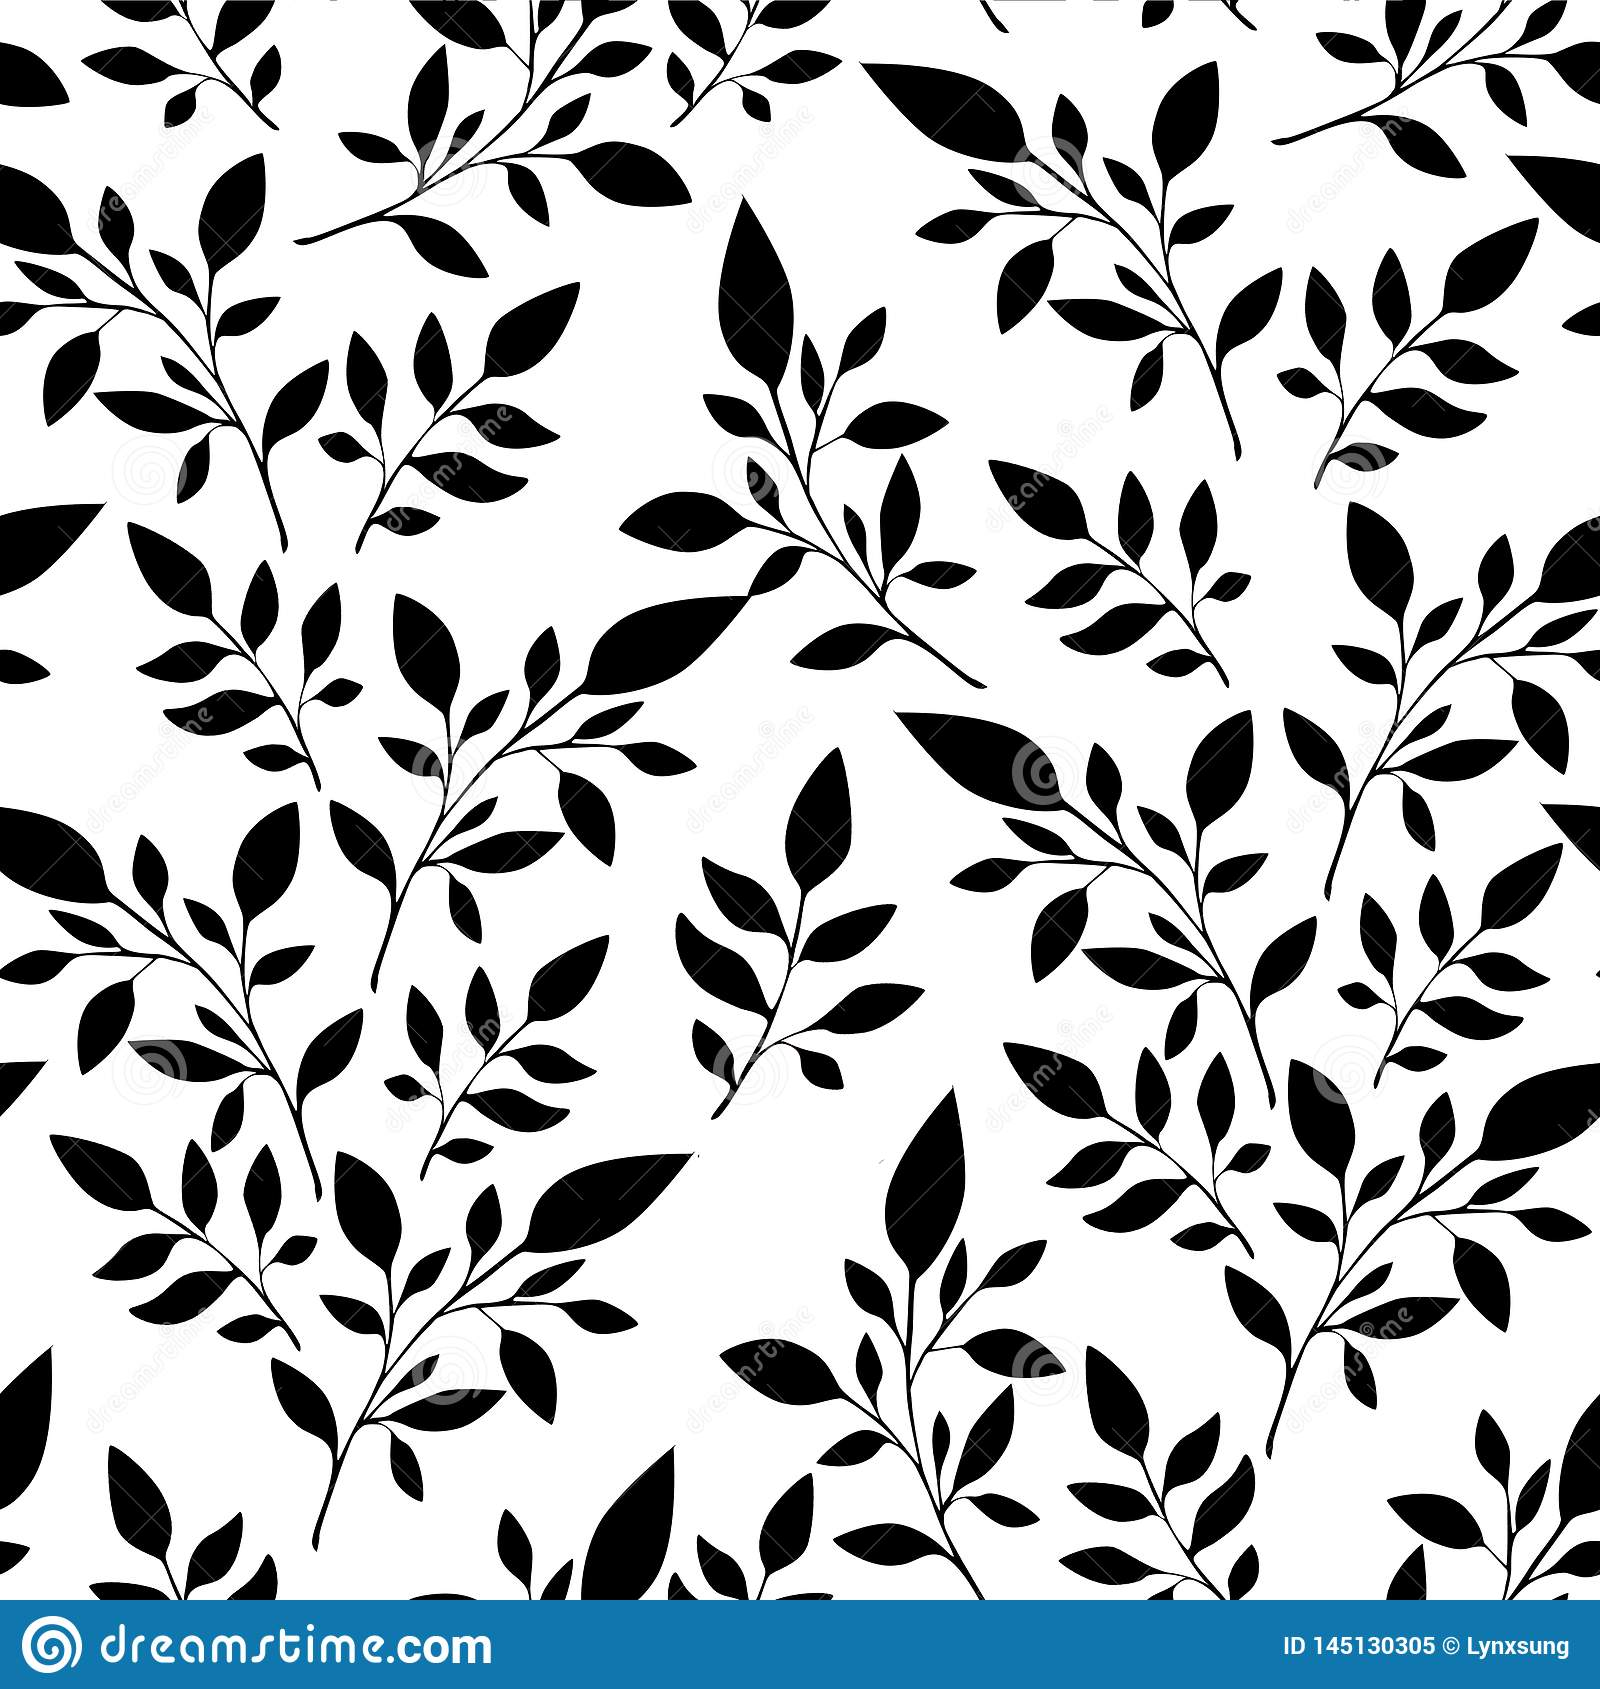 floral pattern, black leaves on the white background for textile printing or background, wallpaper, ad, banner